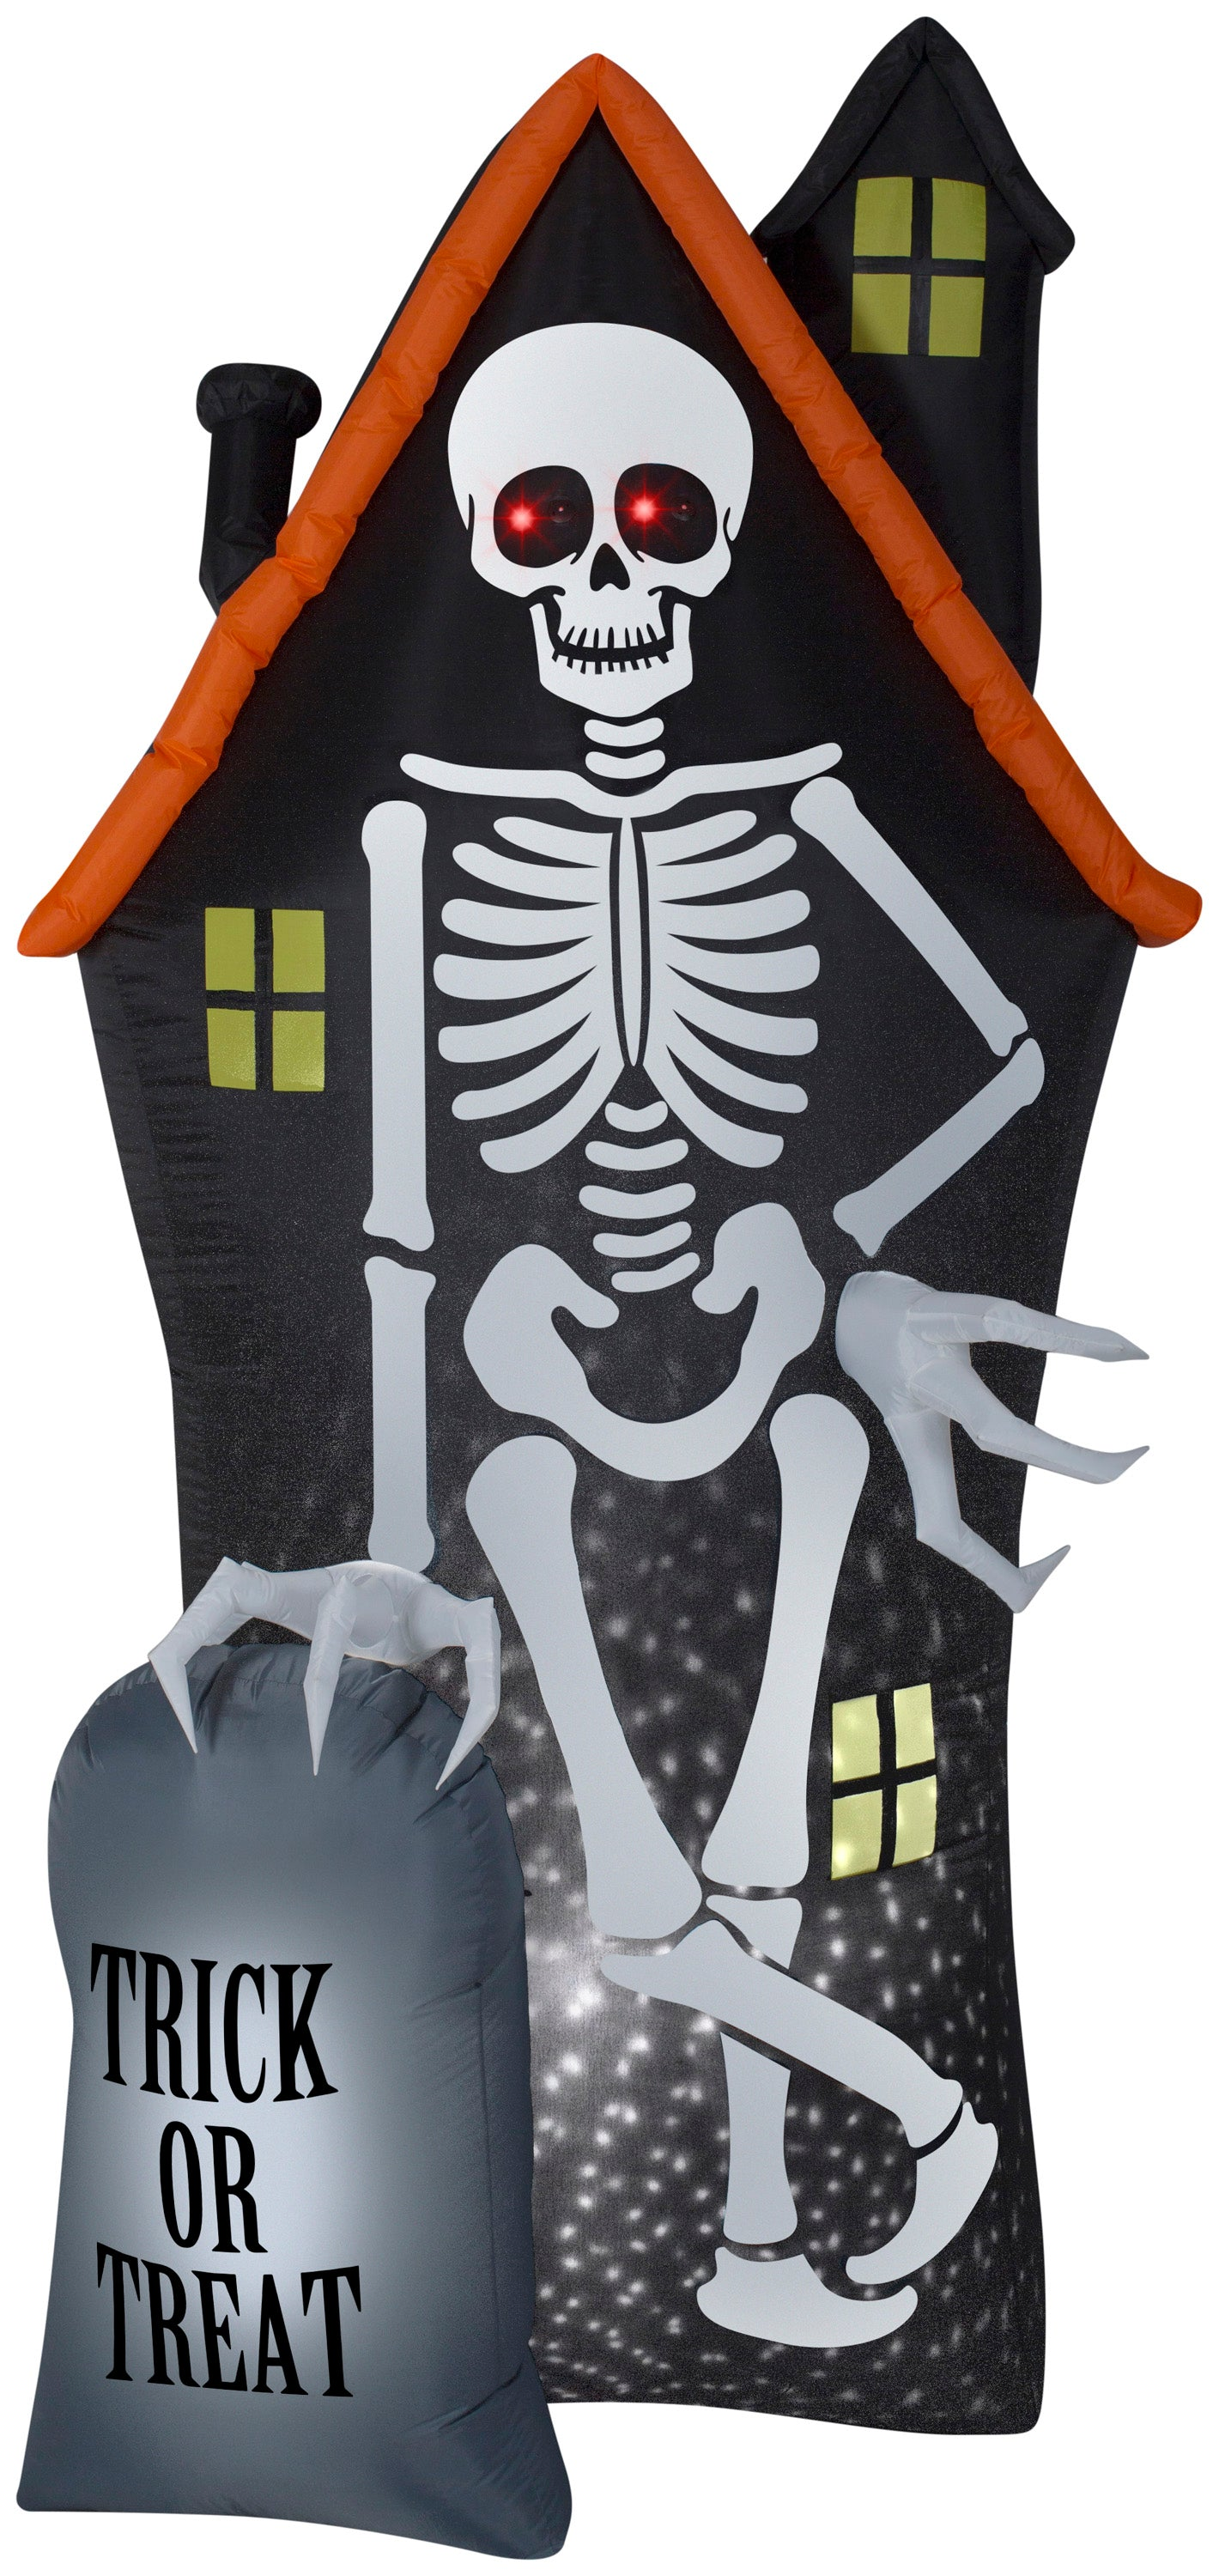 8' Projection Airblown Skeleton and Haunted House Tombstone Scene Halloween Inflatable